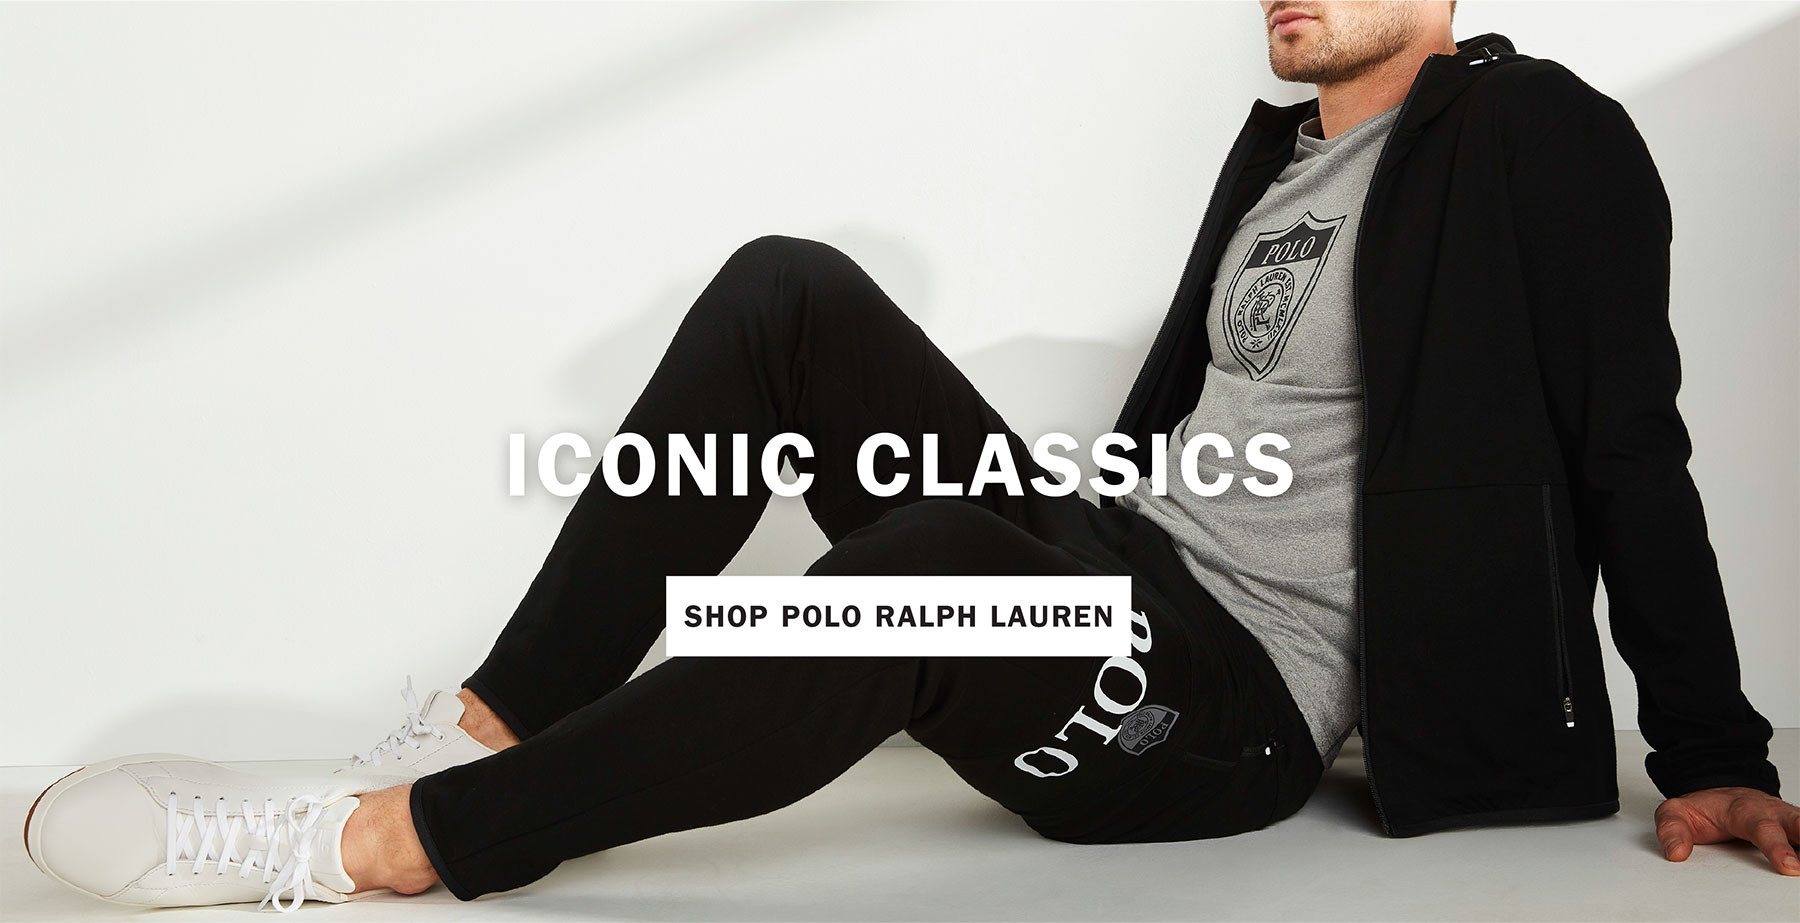 ICONIC CLASSICS | SHOP POLO RALPH LAUREN